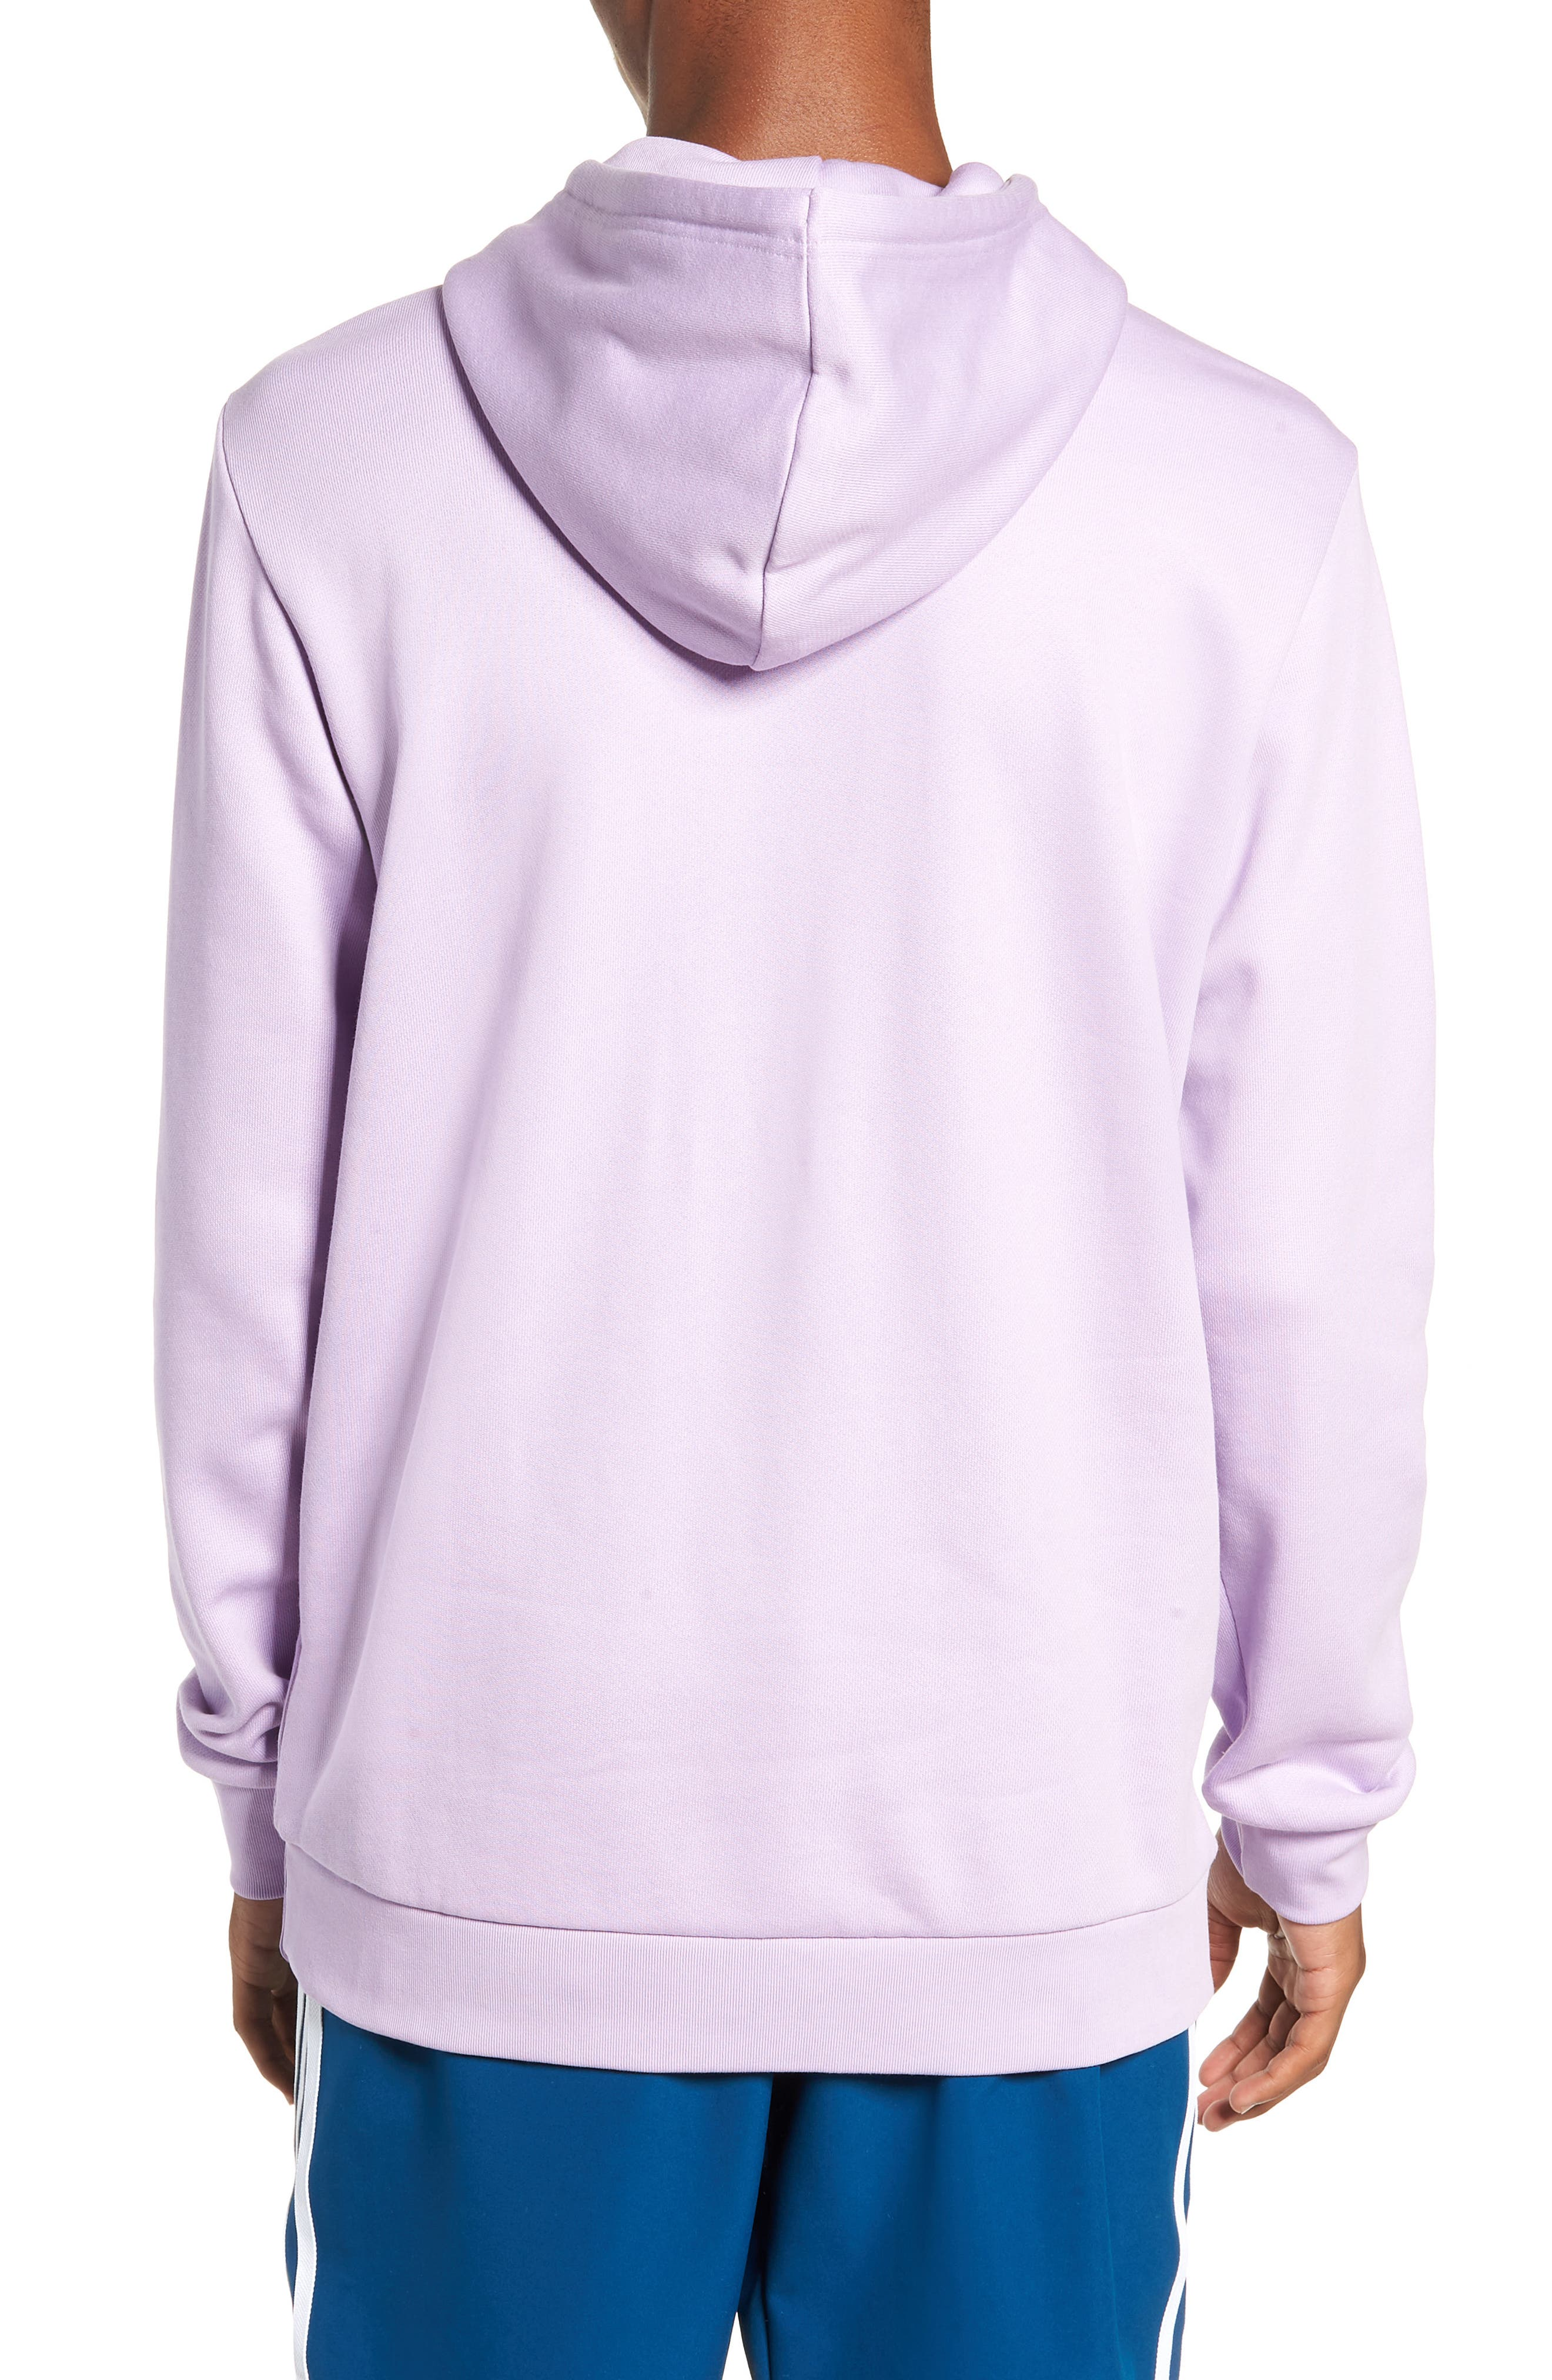 Trefoil Sweatshirt,                             Alternate thumbnail 4, color,